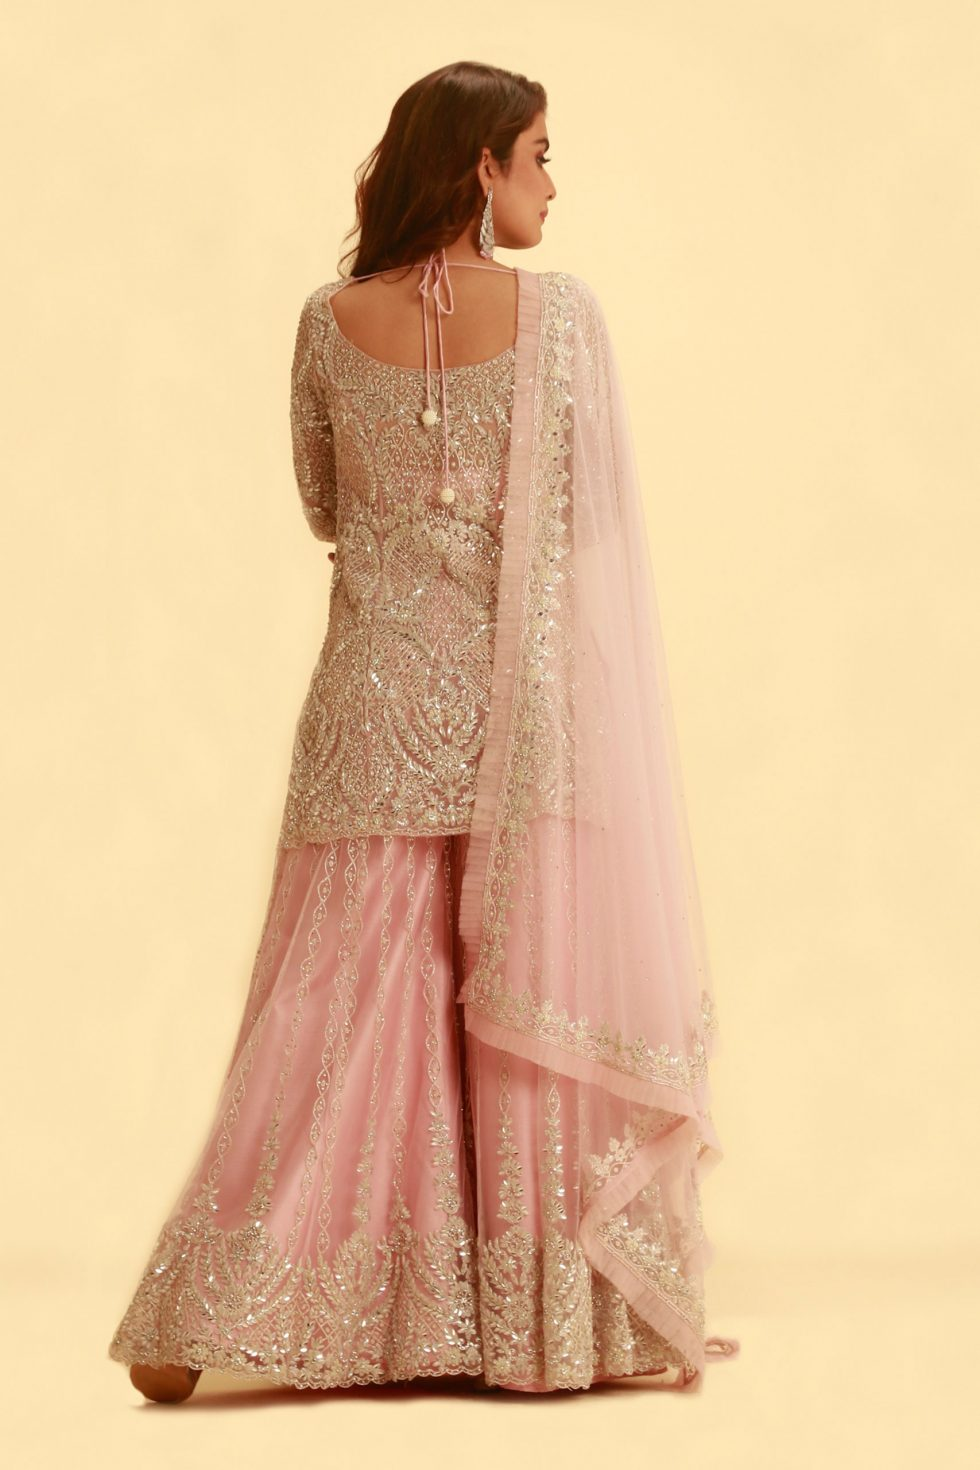 Baby pink salwar set with palazzo pants and matching dupatta with silver embroidery